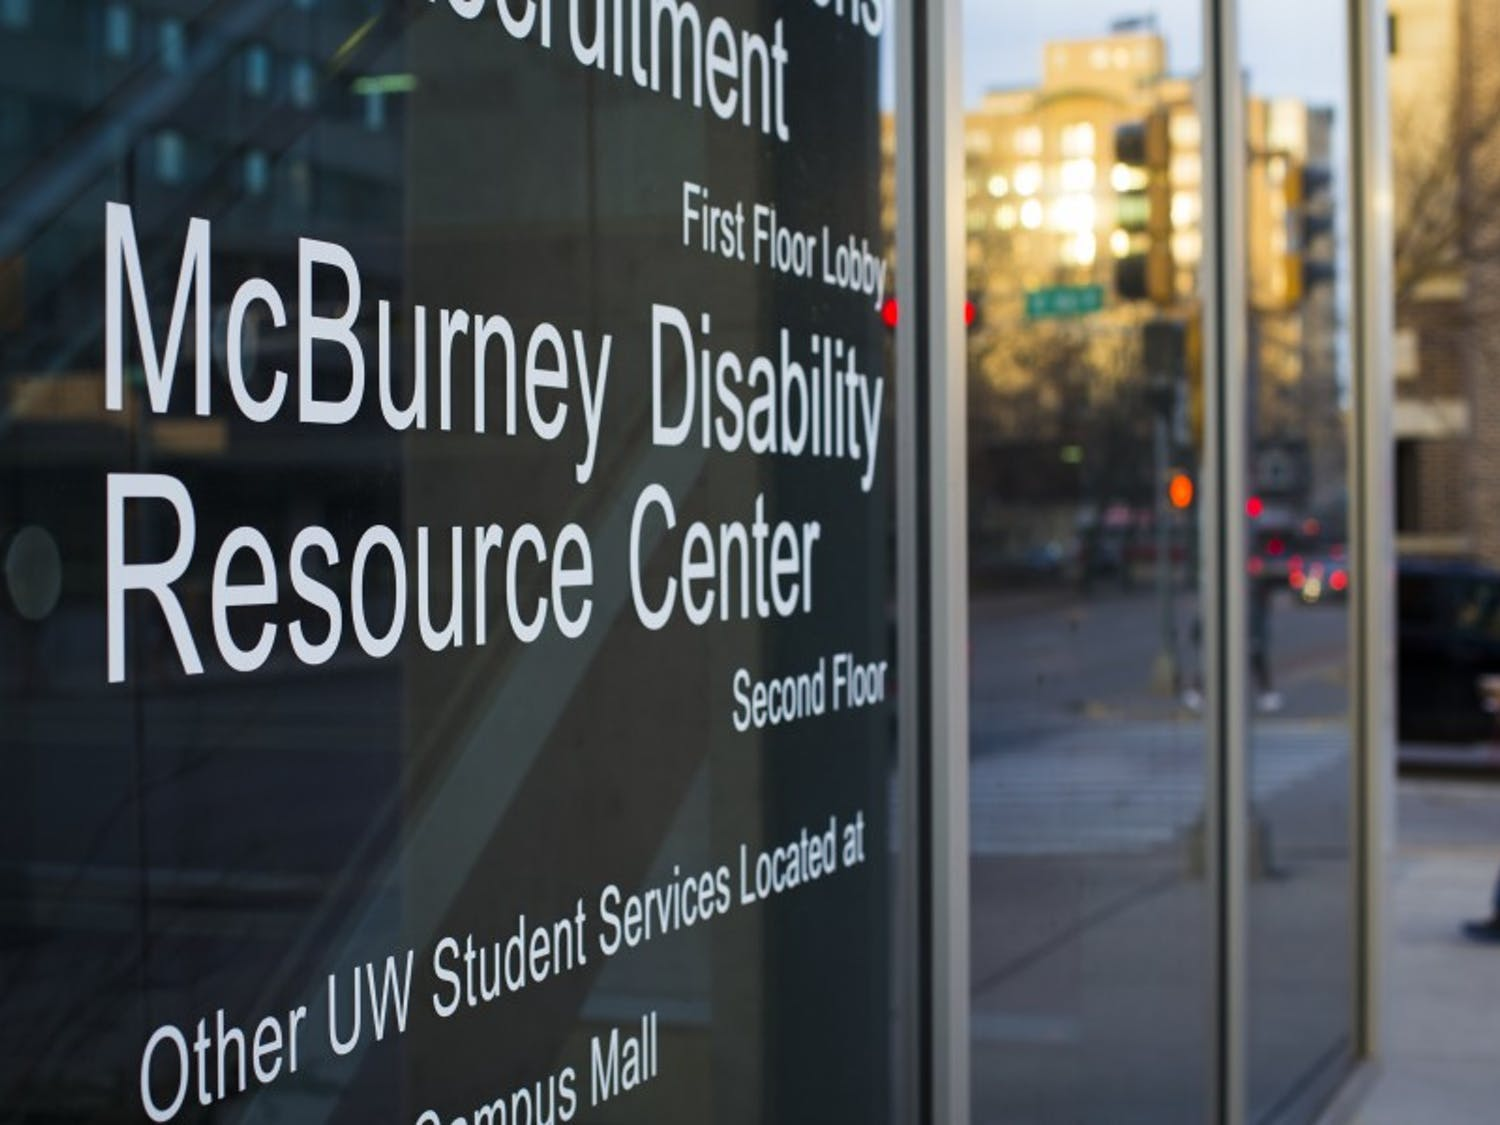 The McBurney Center provides accommodations for many students whose disabilities make the transition to college more difficult.